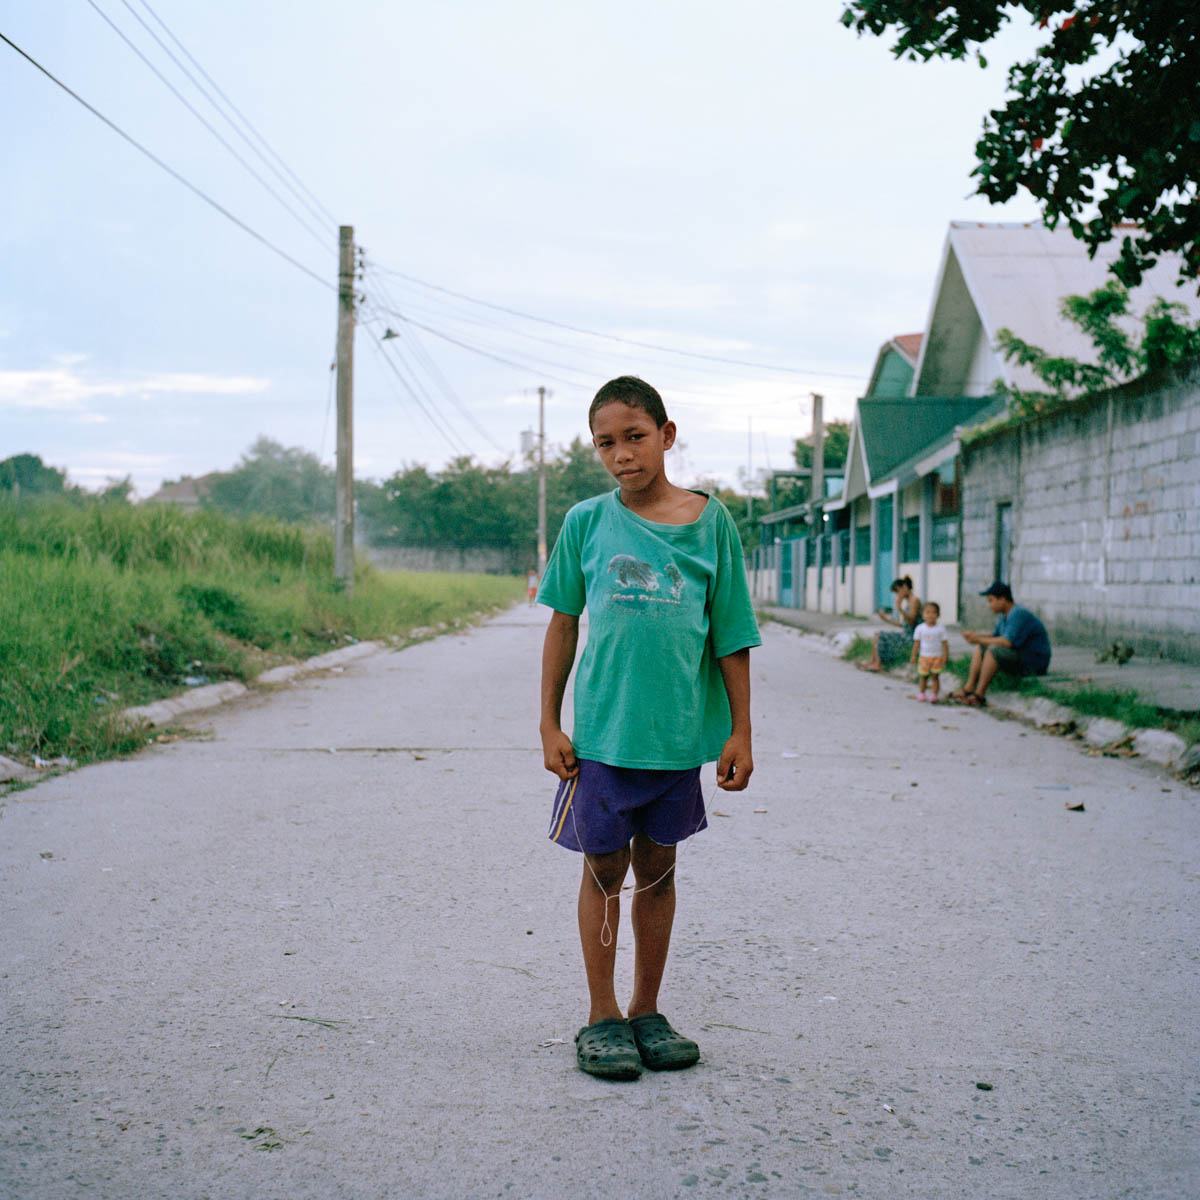 "Christian Jayson - Christian Jayson,11, in the barangay of Ipil-Ipil, a popular neighbourhood of Angeles City. His father is American. Angeles City, Philippines, August 2014. - Copyright © © S. Borcard - N. Metraux - Angeles - Central Luzon - Philippines - <A href=""https://maps.google.com/?ll=15.168055,120.586388&z=16"" target=""_blank"">(Map Christian Jayson)</A>"